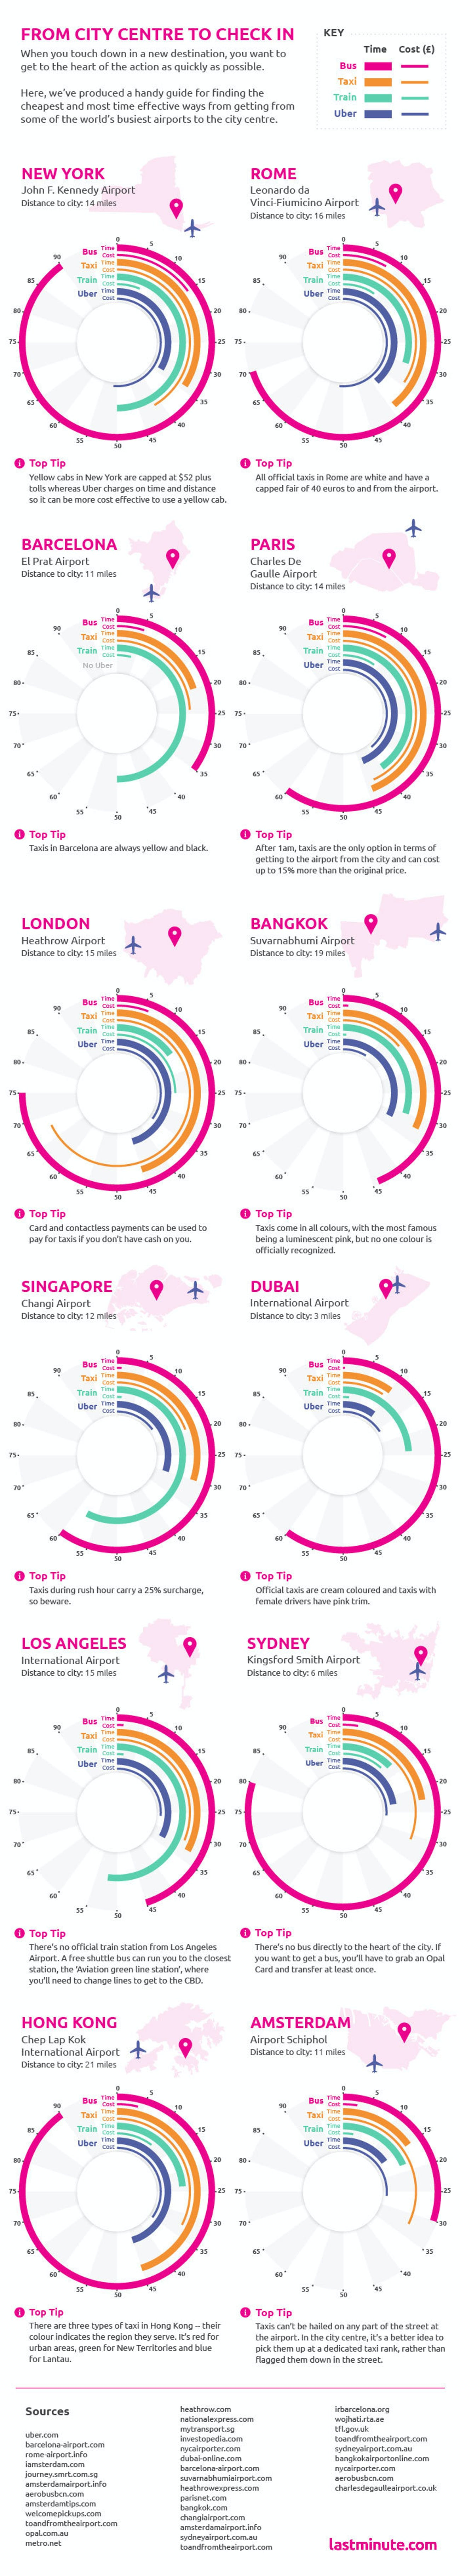 The infographic shows which are the best ways to travel from the airport.